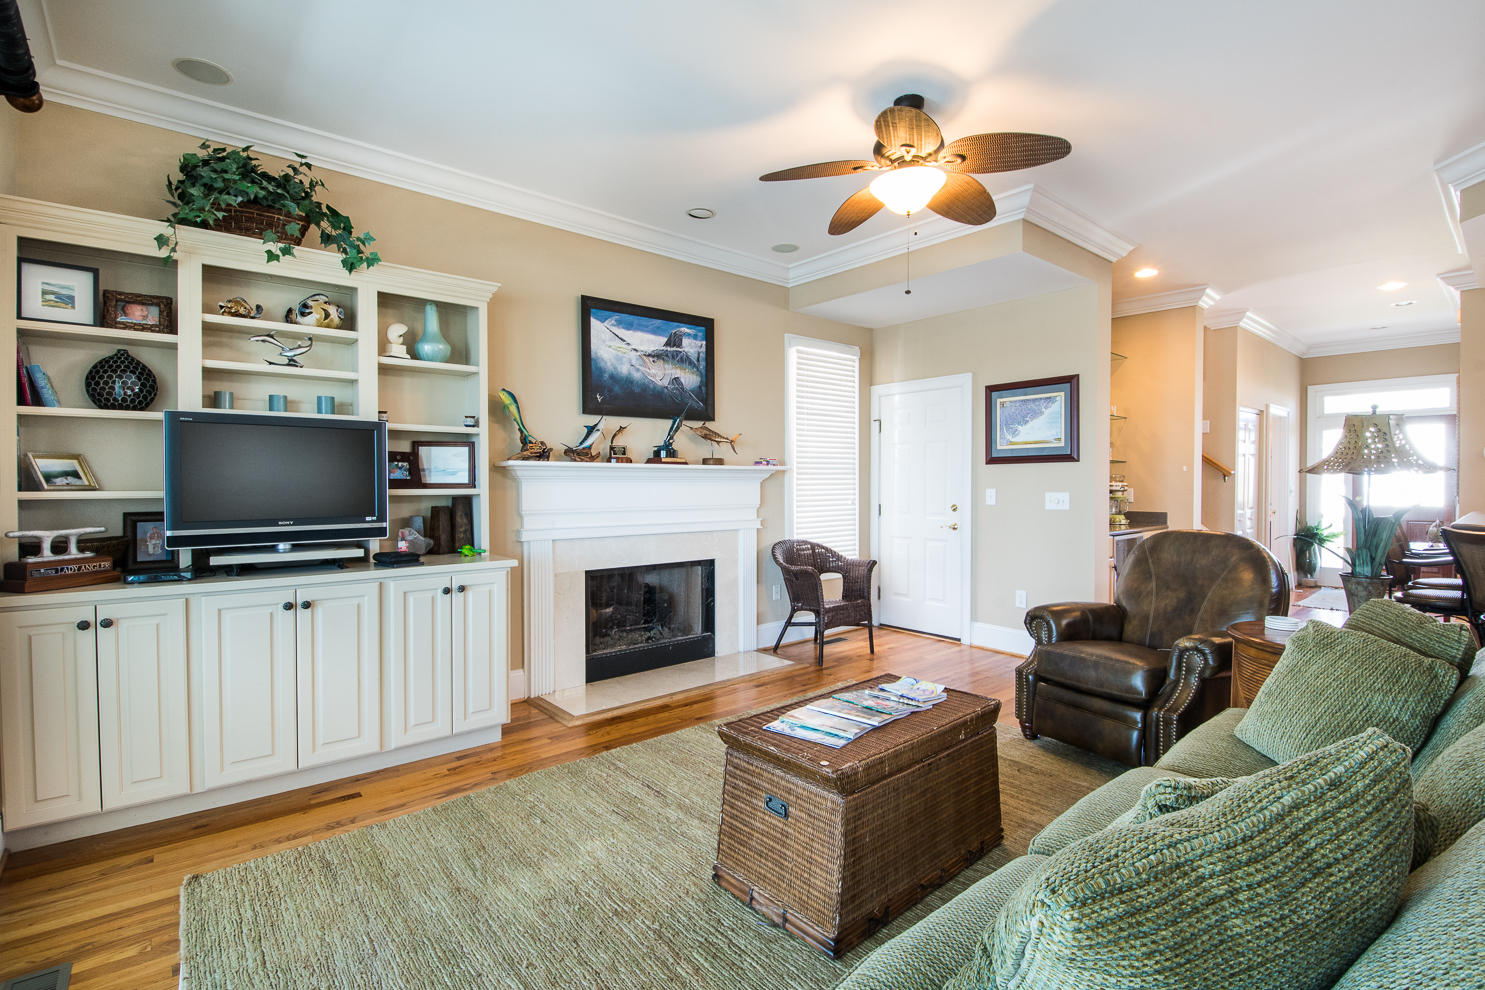 Tolers Cove Homes For Sale - B-4 & B-5 Tolers Cove Marina 70ft + Home, Mount Pleasant, SC - 30